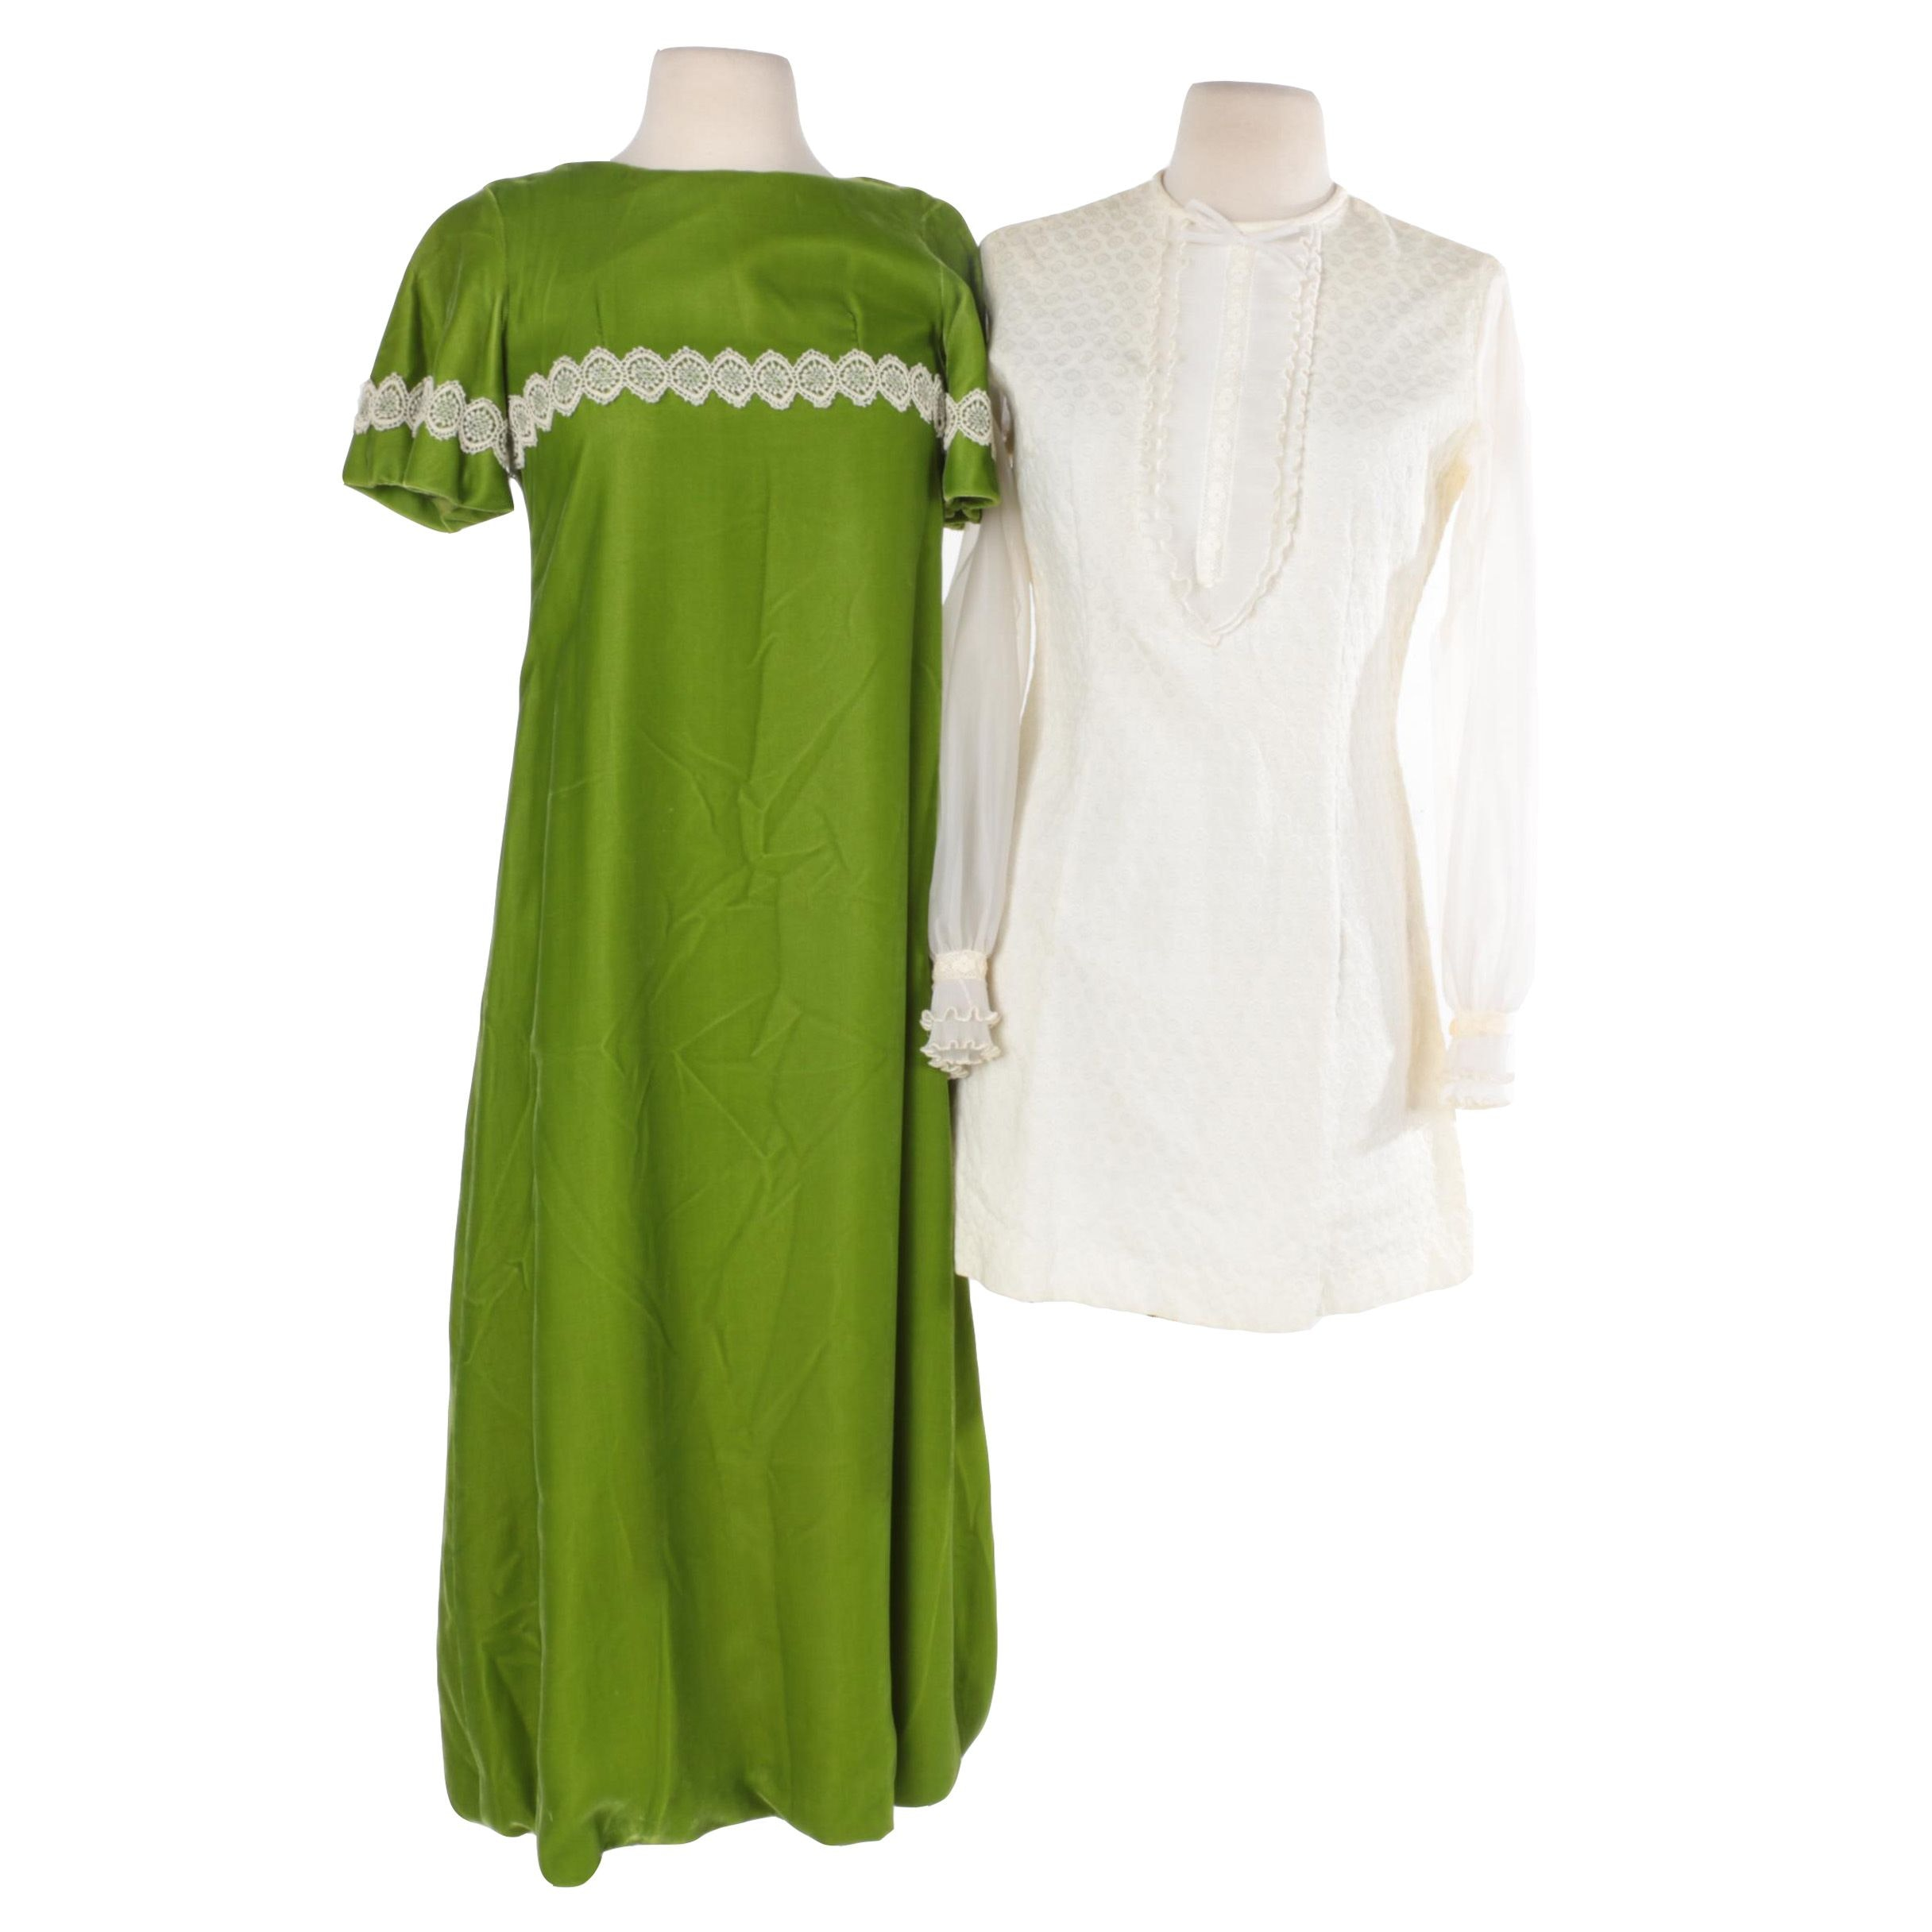 1960s-70s Vintage Velvet and Brocade Dresses